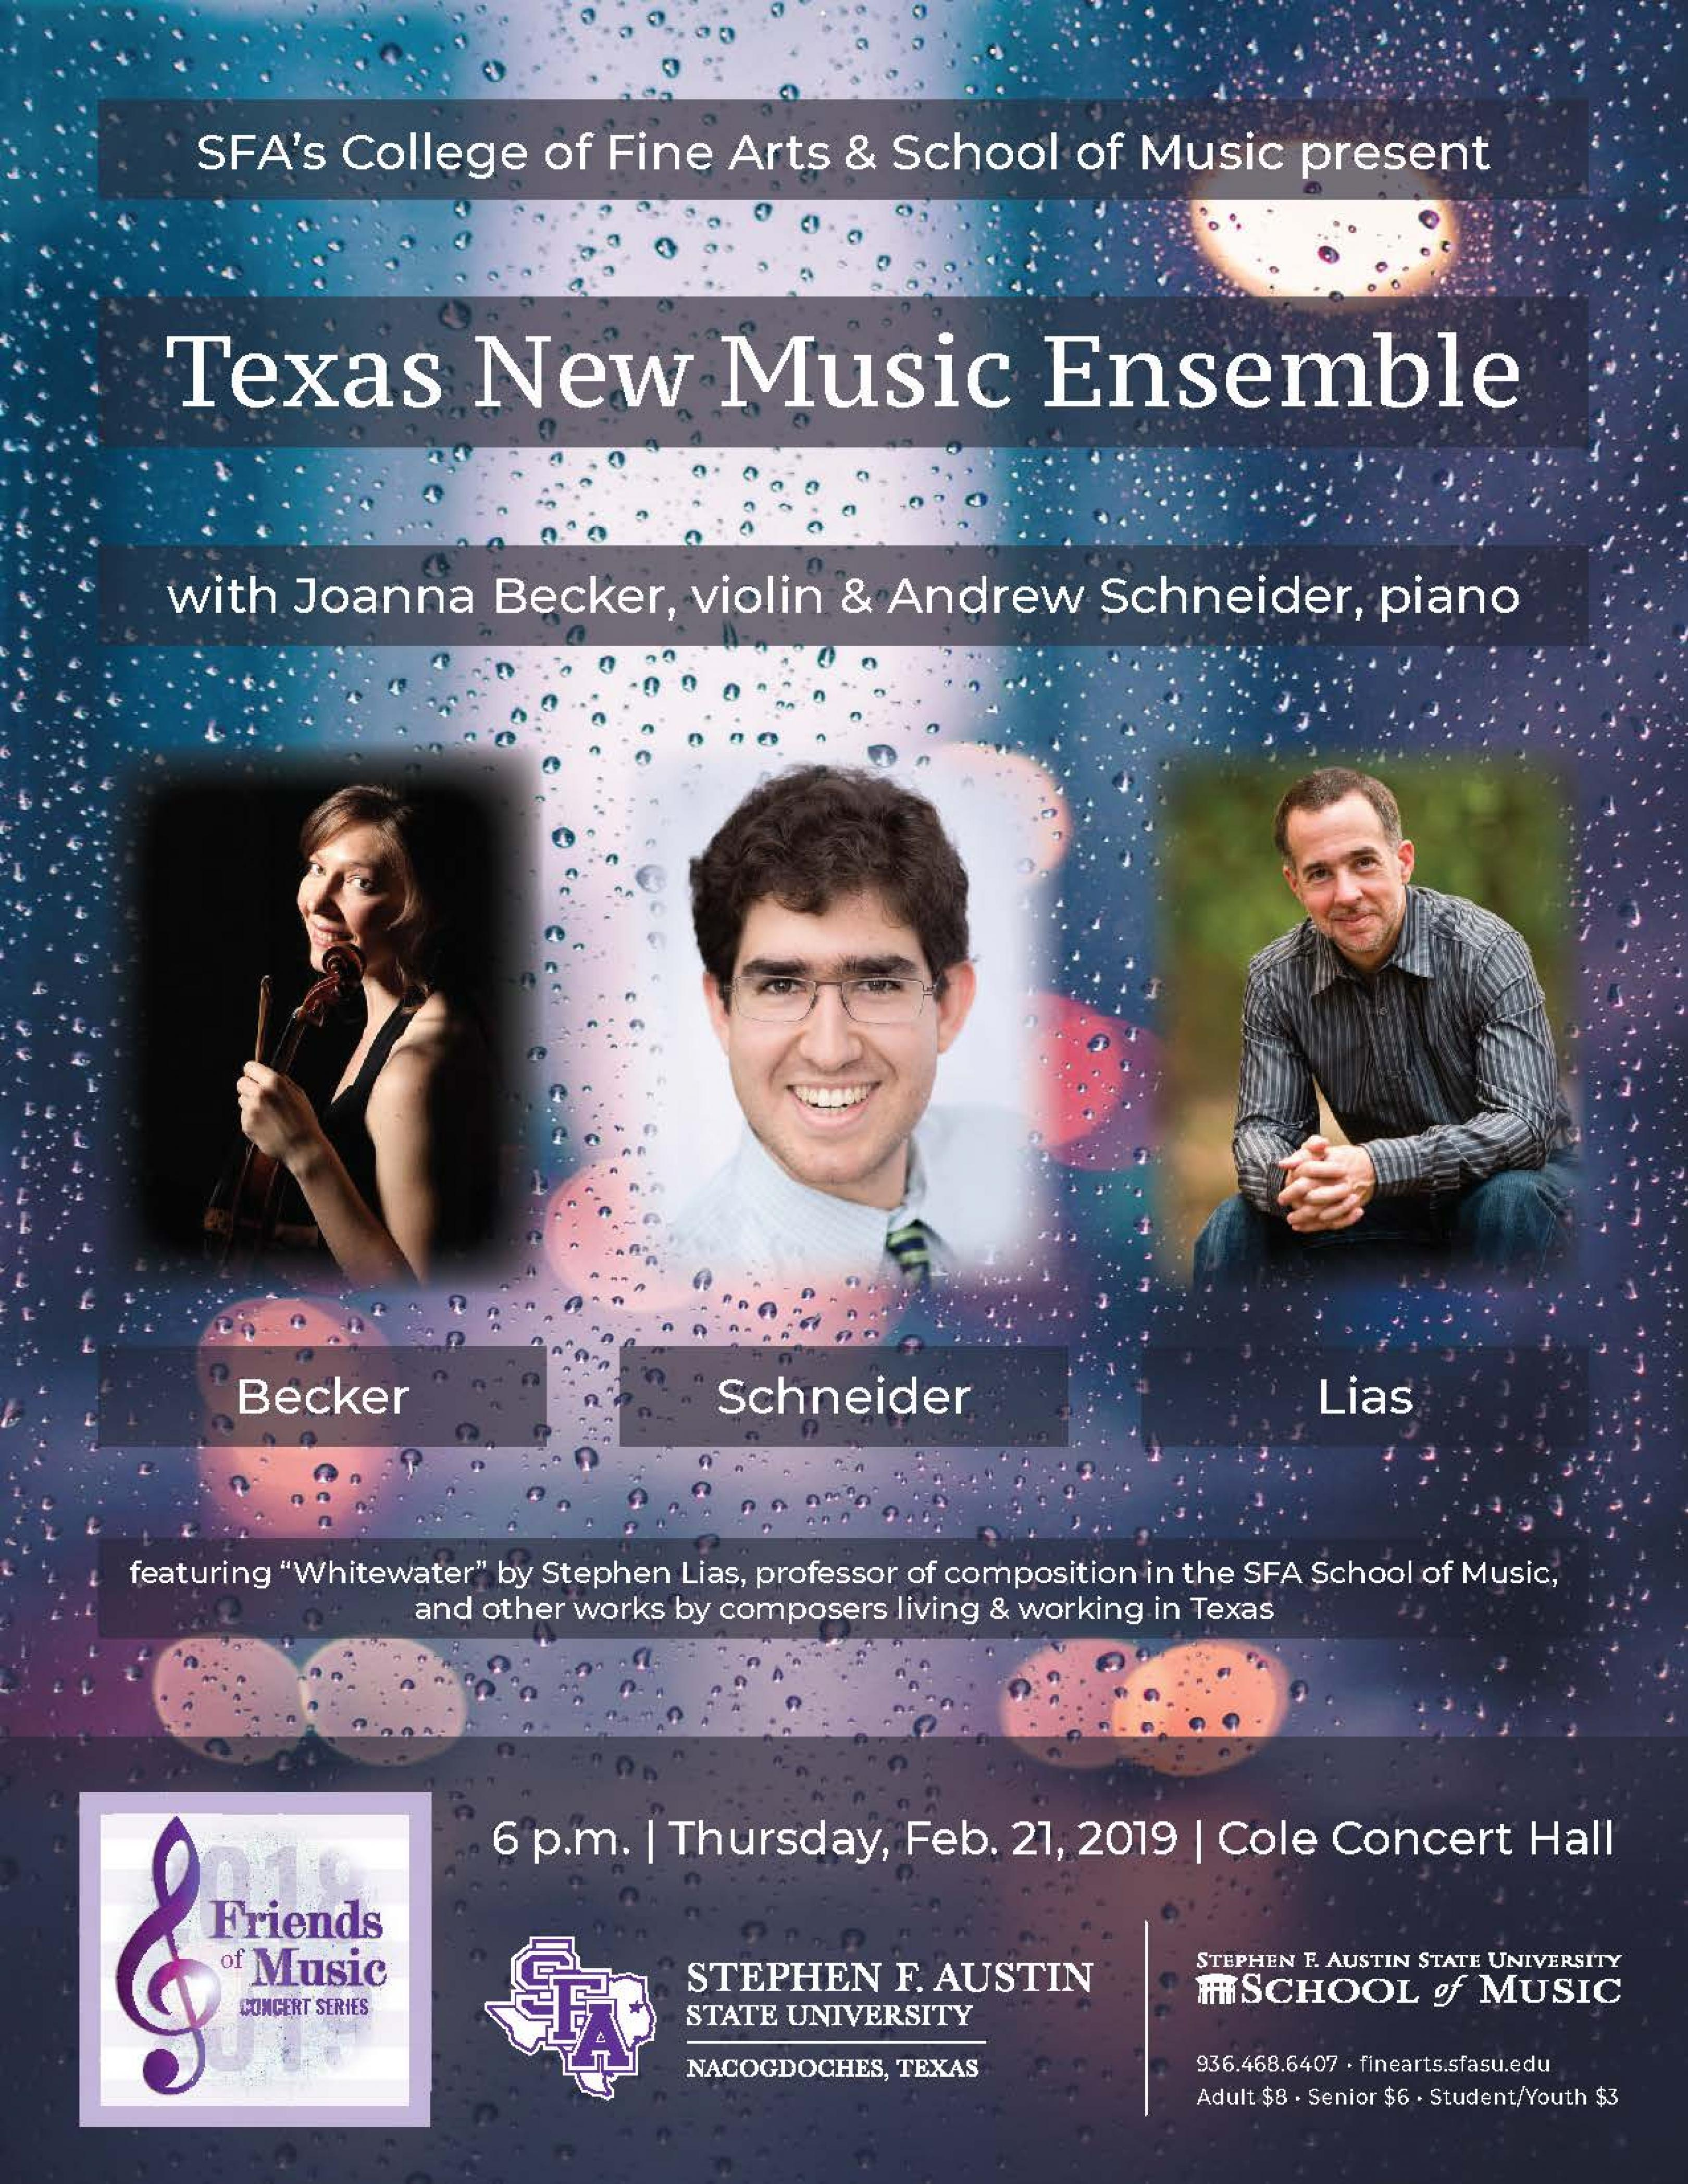 publicity image for Texas New Music Ensemble